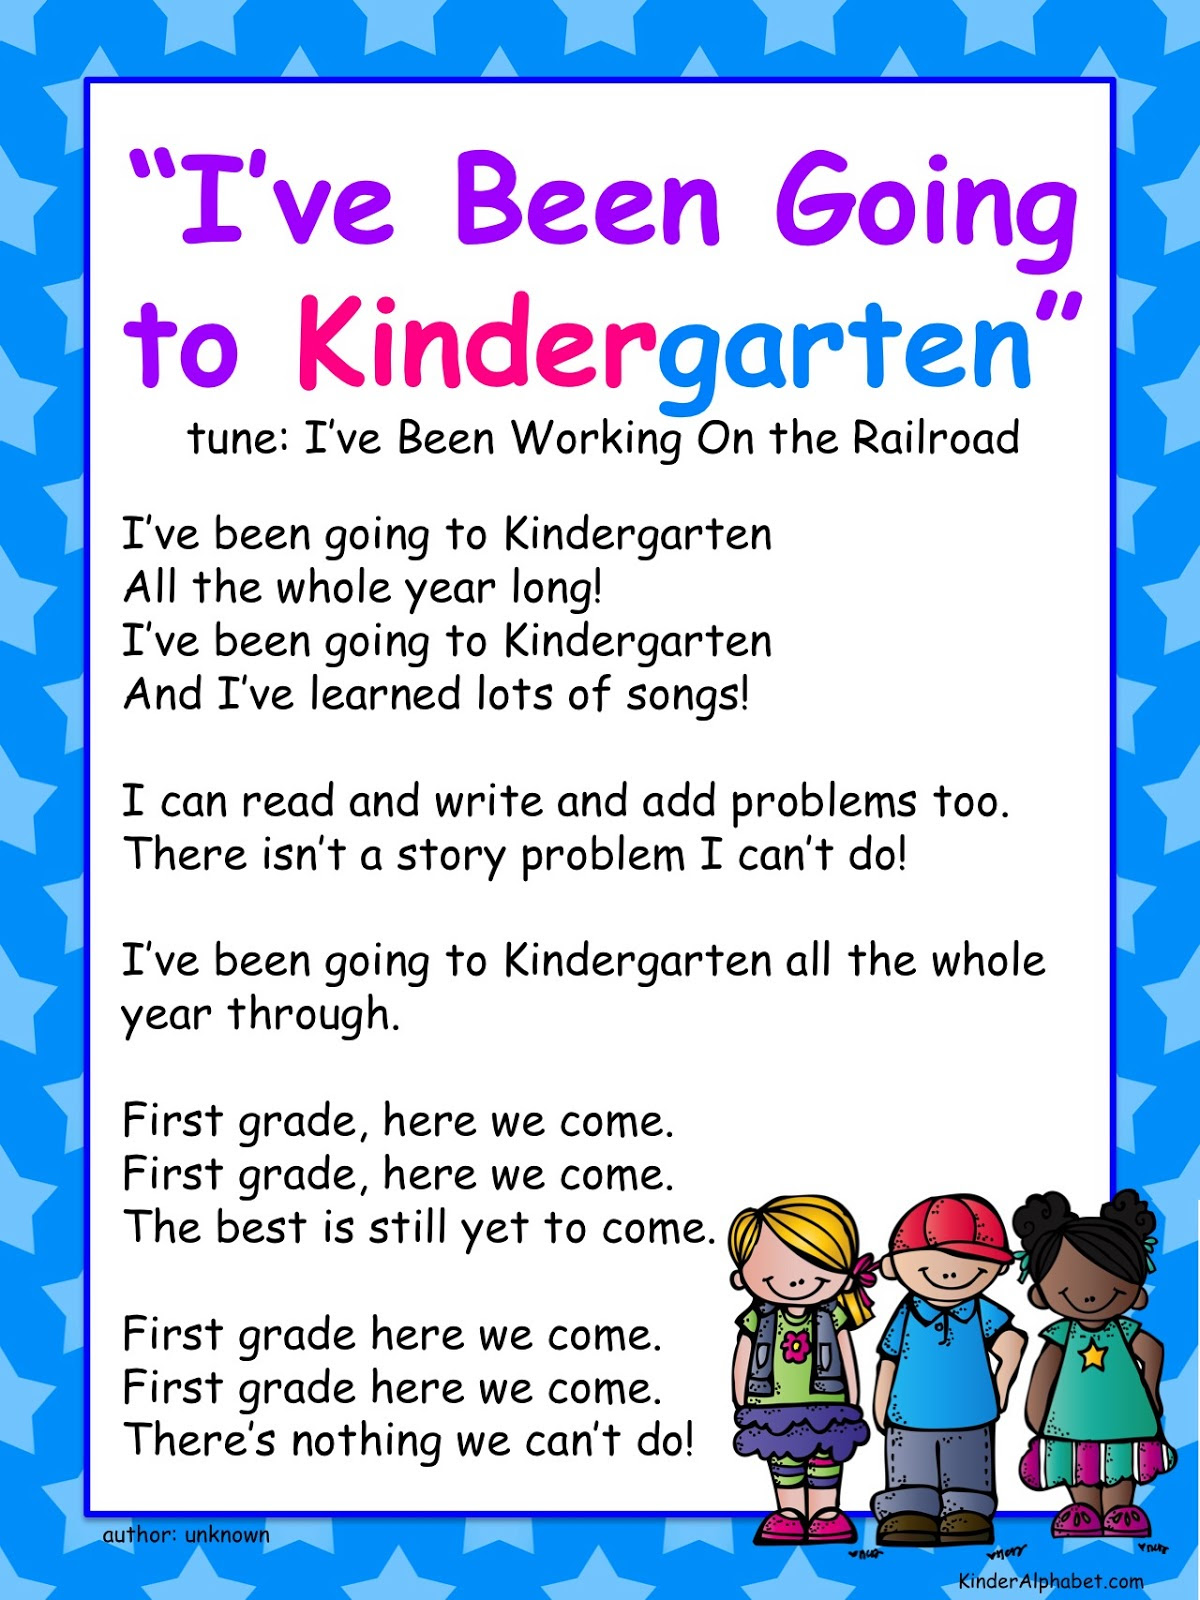 Quotes About Graduation In Kindergarten 22 Quotes